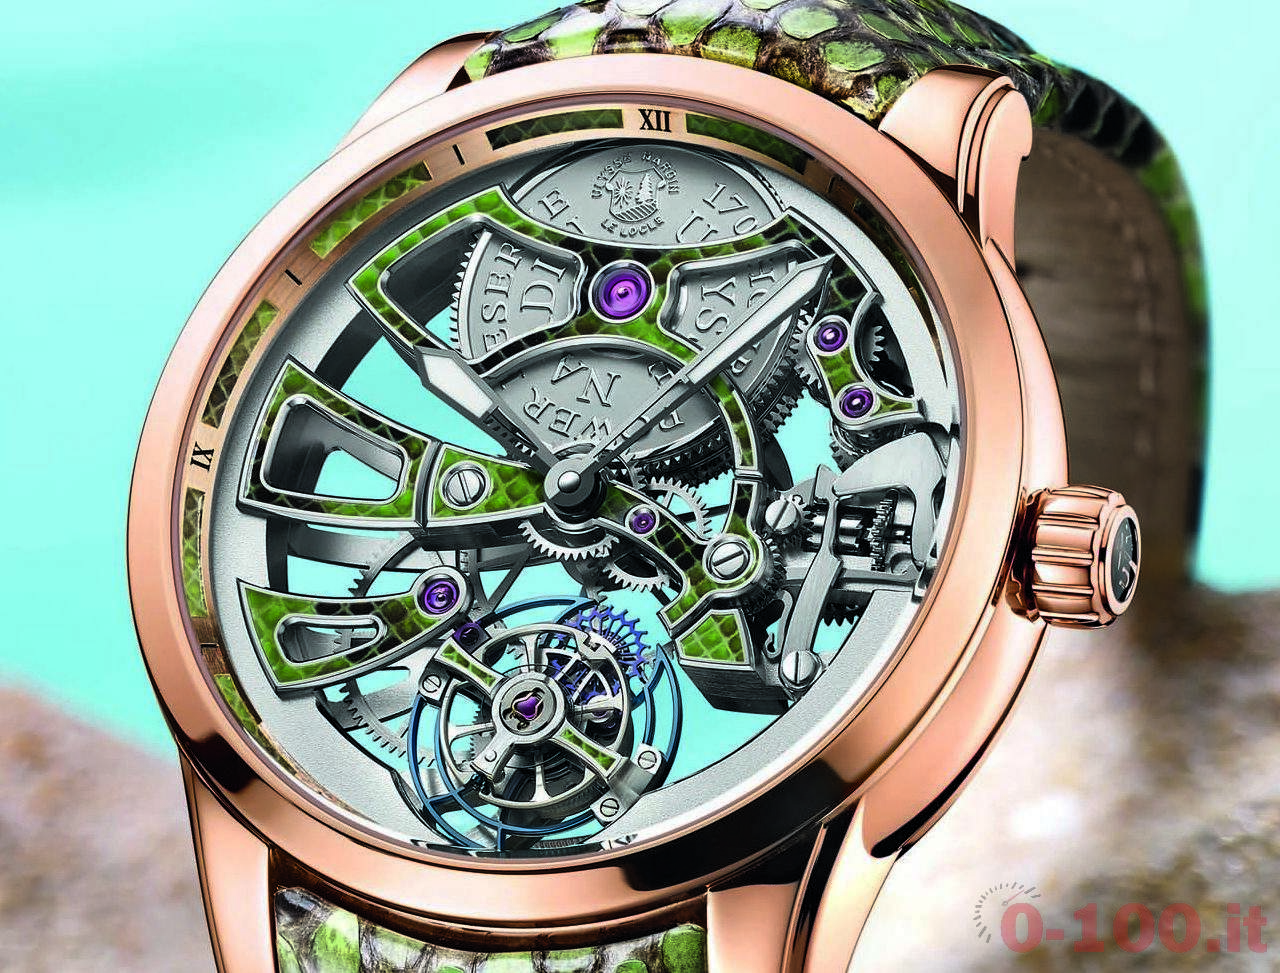 anteprima-baselworld-2016-ulysse-nardin-royal-python-skeleton-tourbillon-limited-edition-ref-1706-12908-prezzo-price_0-1002